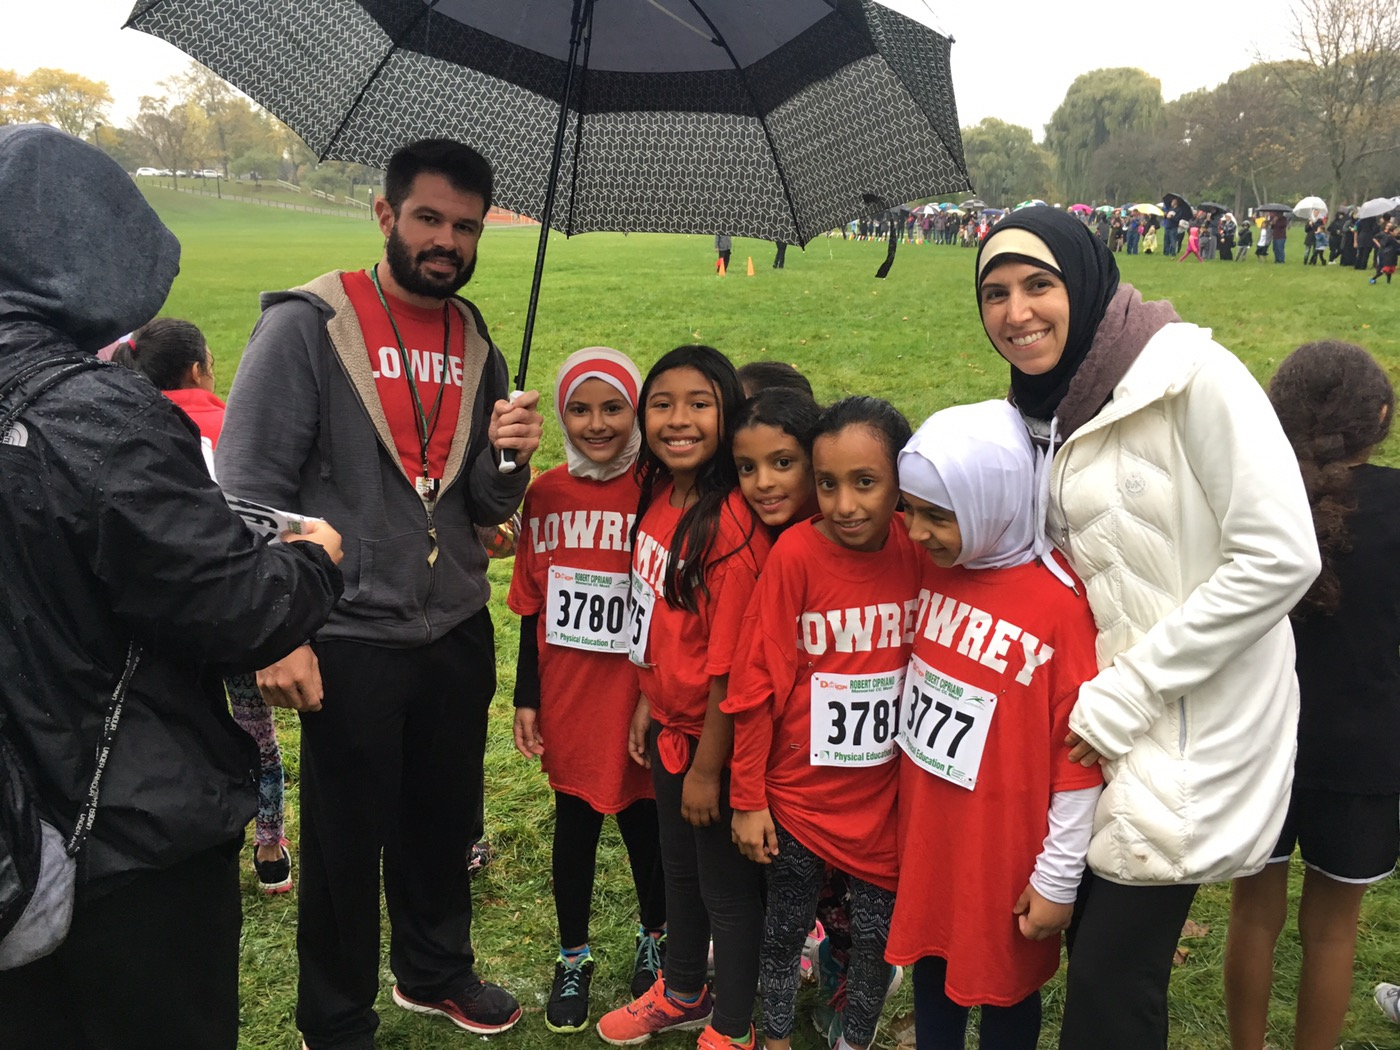 Teacher and Assistant principal standing with students at Cipriano Run